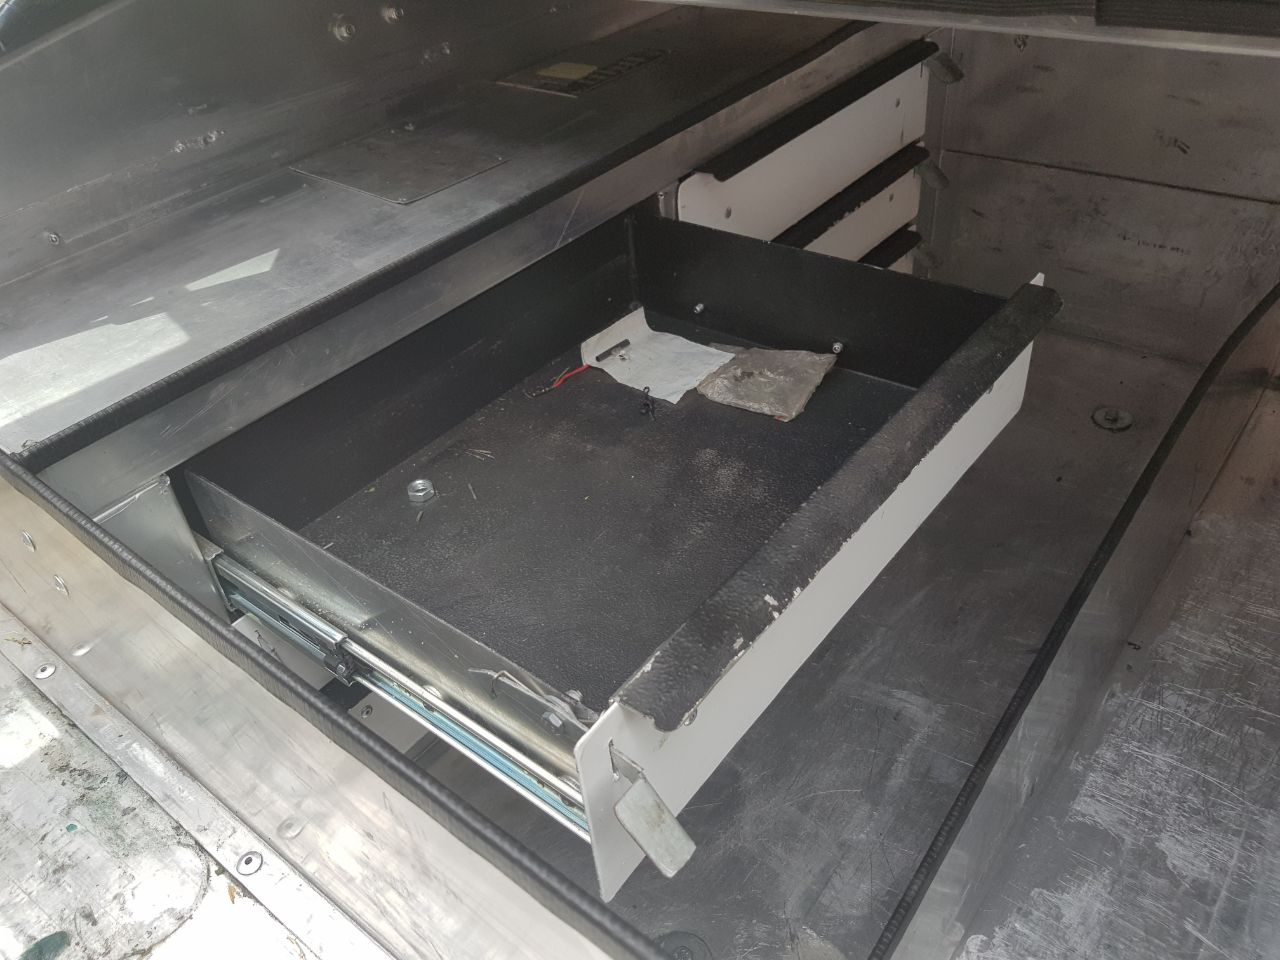 ALUMINIUM TOOL BOXES CANOPIES- FOR BAKKIES - ALMOST BRAND NEW & ALUMINIUM TOOL BOXES CANOPIES- FOR BAKKIES - ALMOST BRAND NEW ...